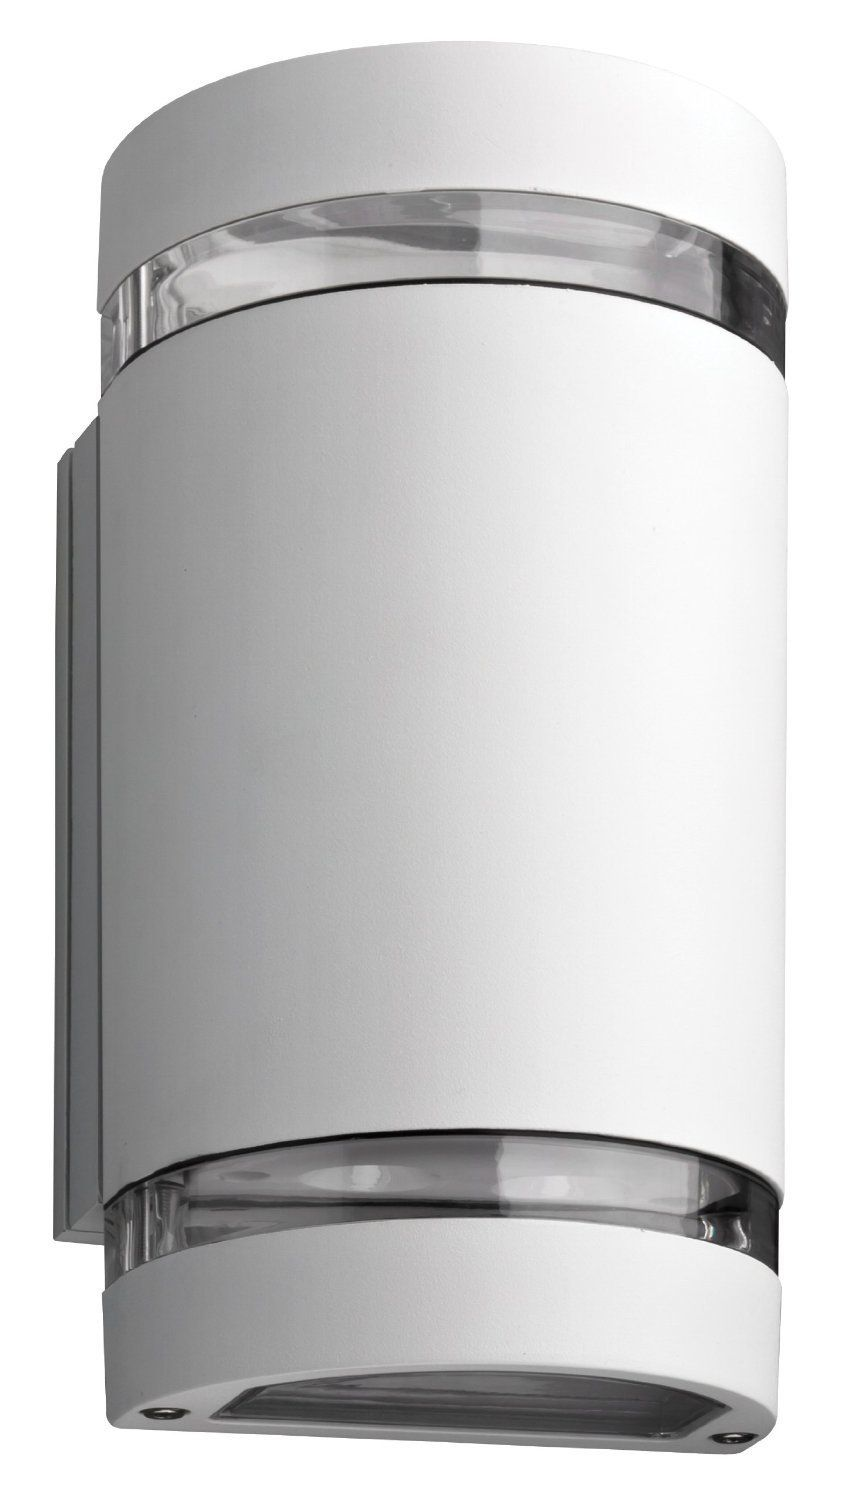 Lithonia lighting ollwu wh m6 outdoor led wall cylinder 2 light up lithonia lighting ollwu wh m6 outdoor led wall cylinder 2 light up and down mozeypictures Image collections